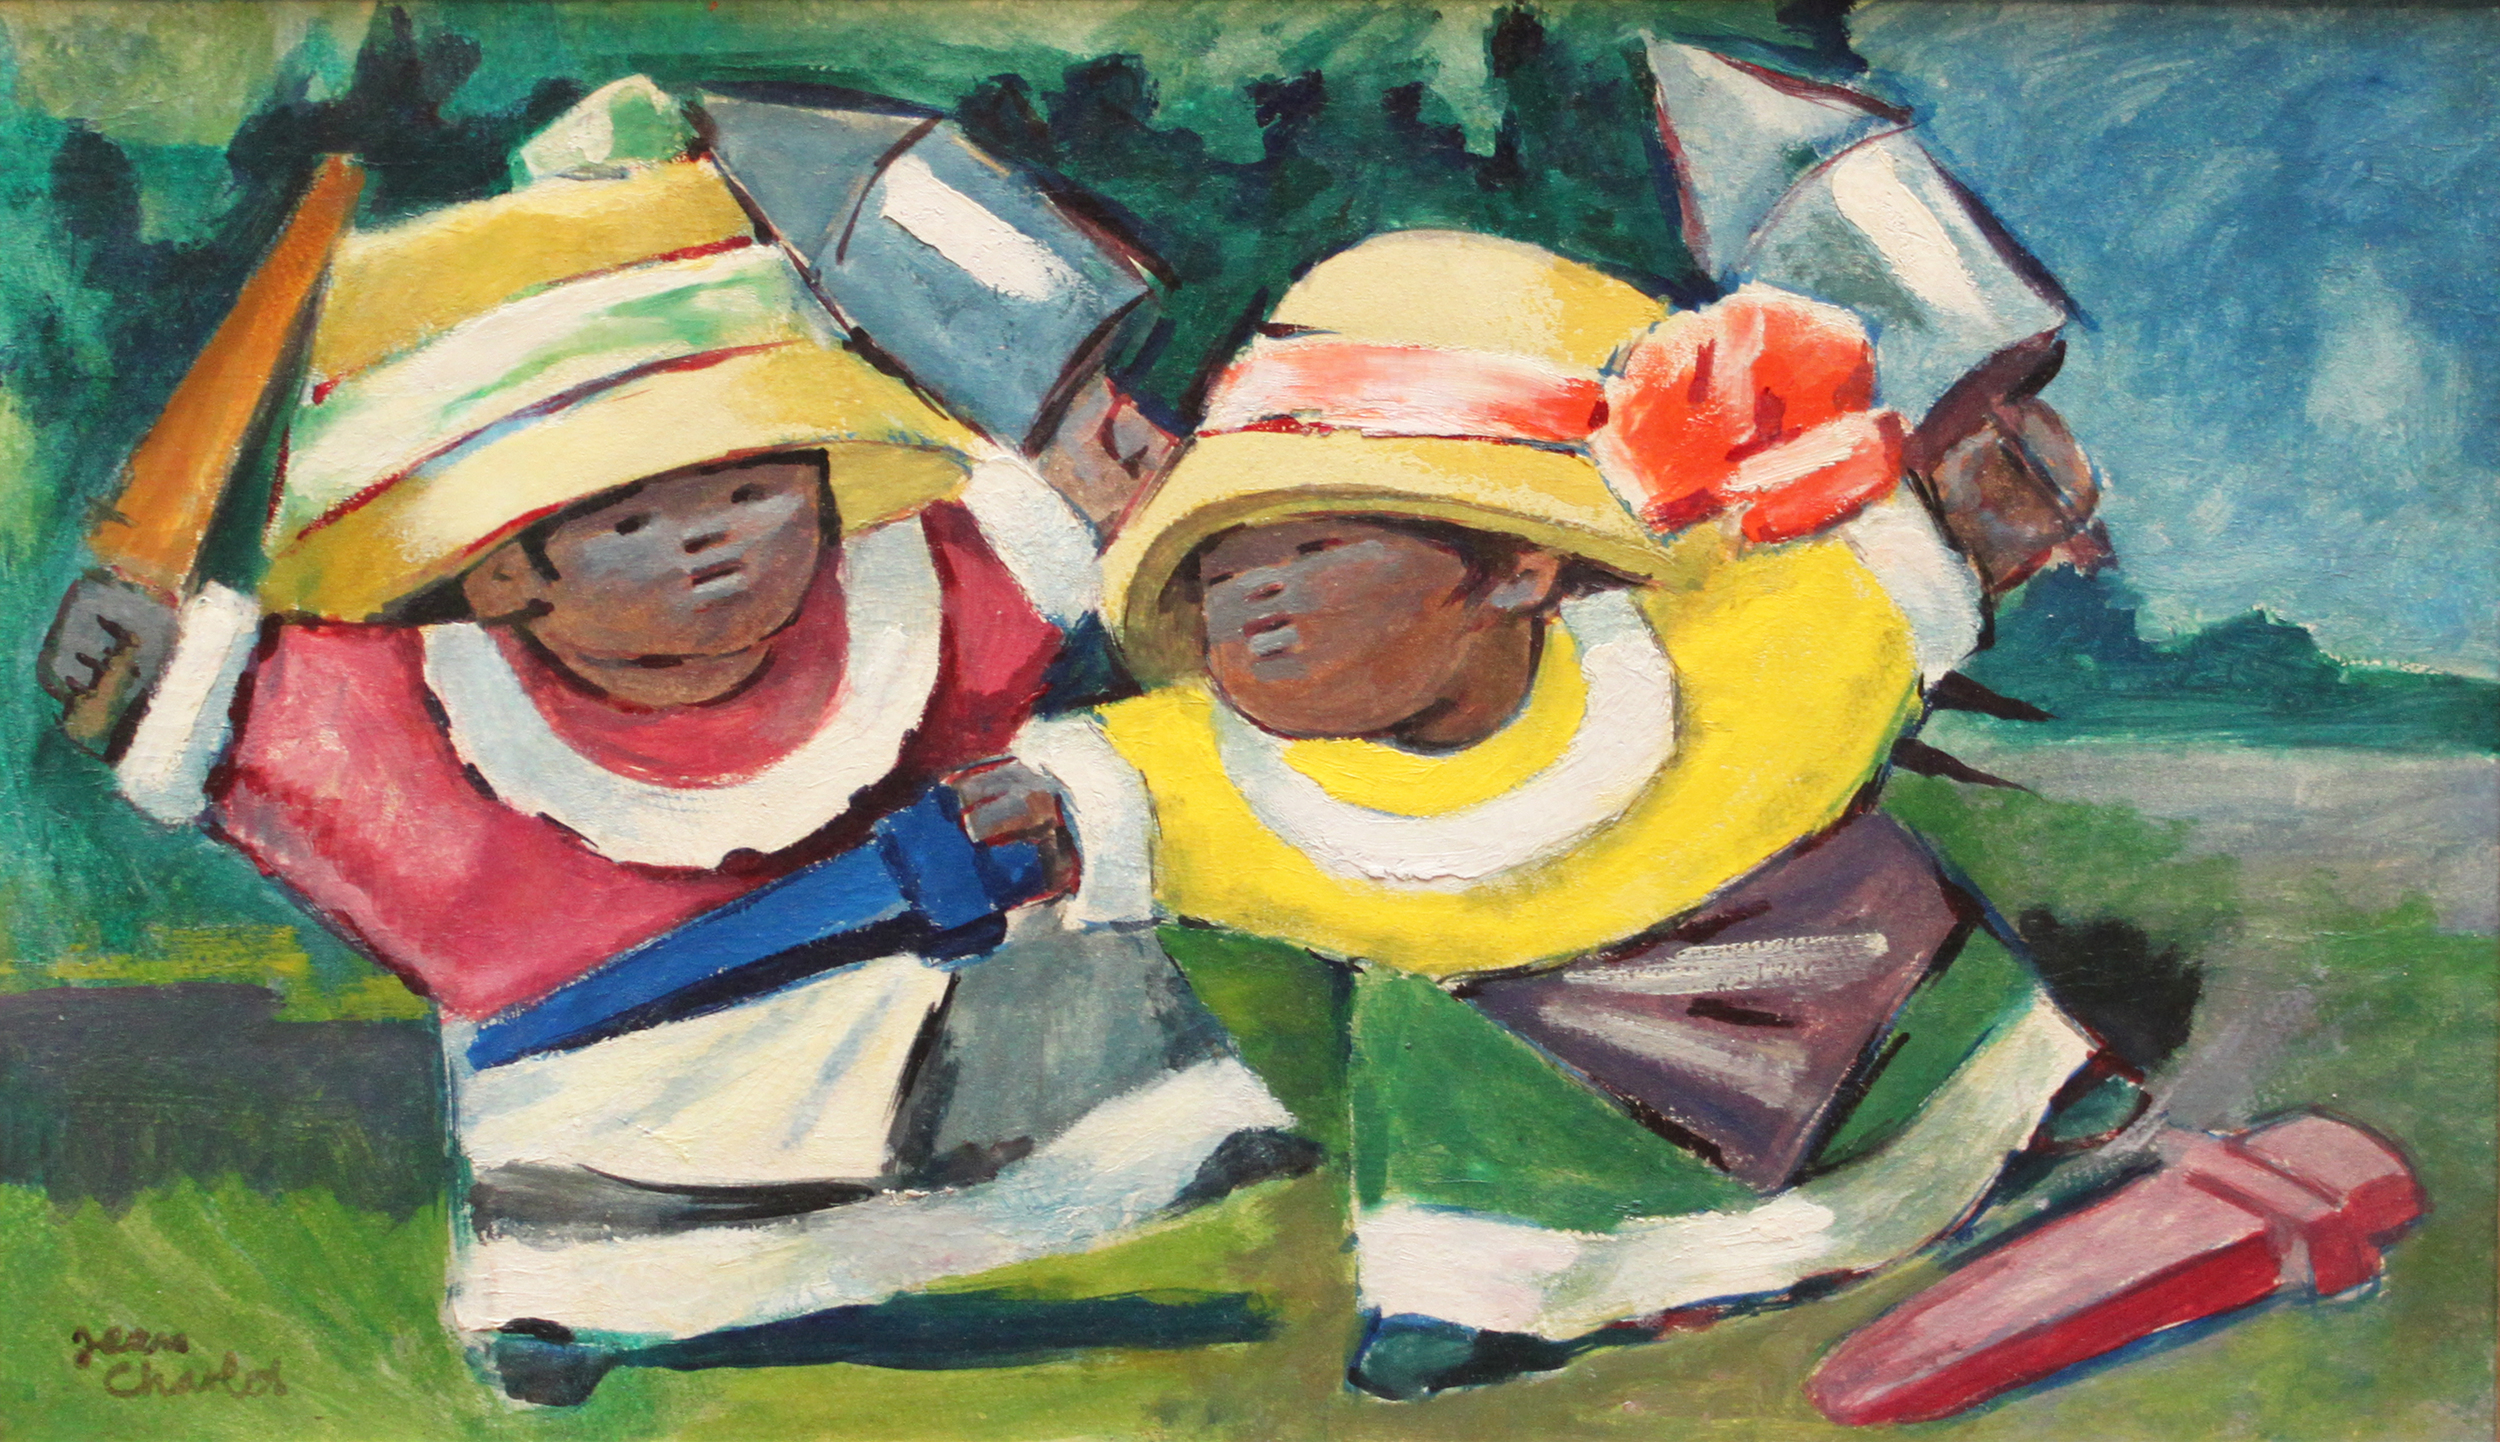 Jean Charlot (1898-1977)    Dazentes (Macinches) , 1932   oil on paper mounted on masonite  15 x 24 5/8 inches; 33.1 x 60.5 centimeters